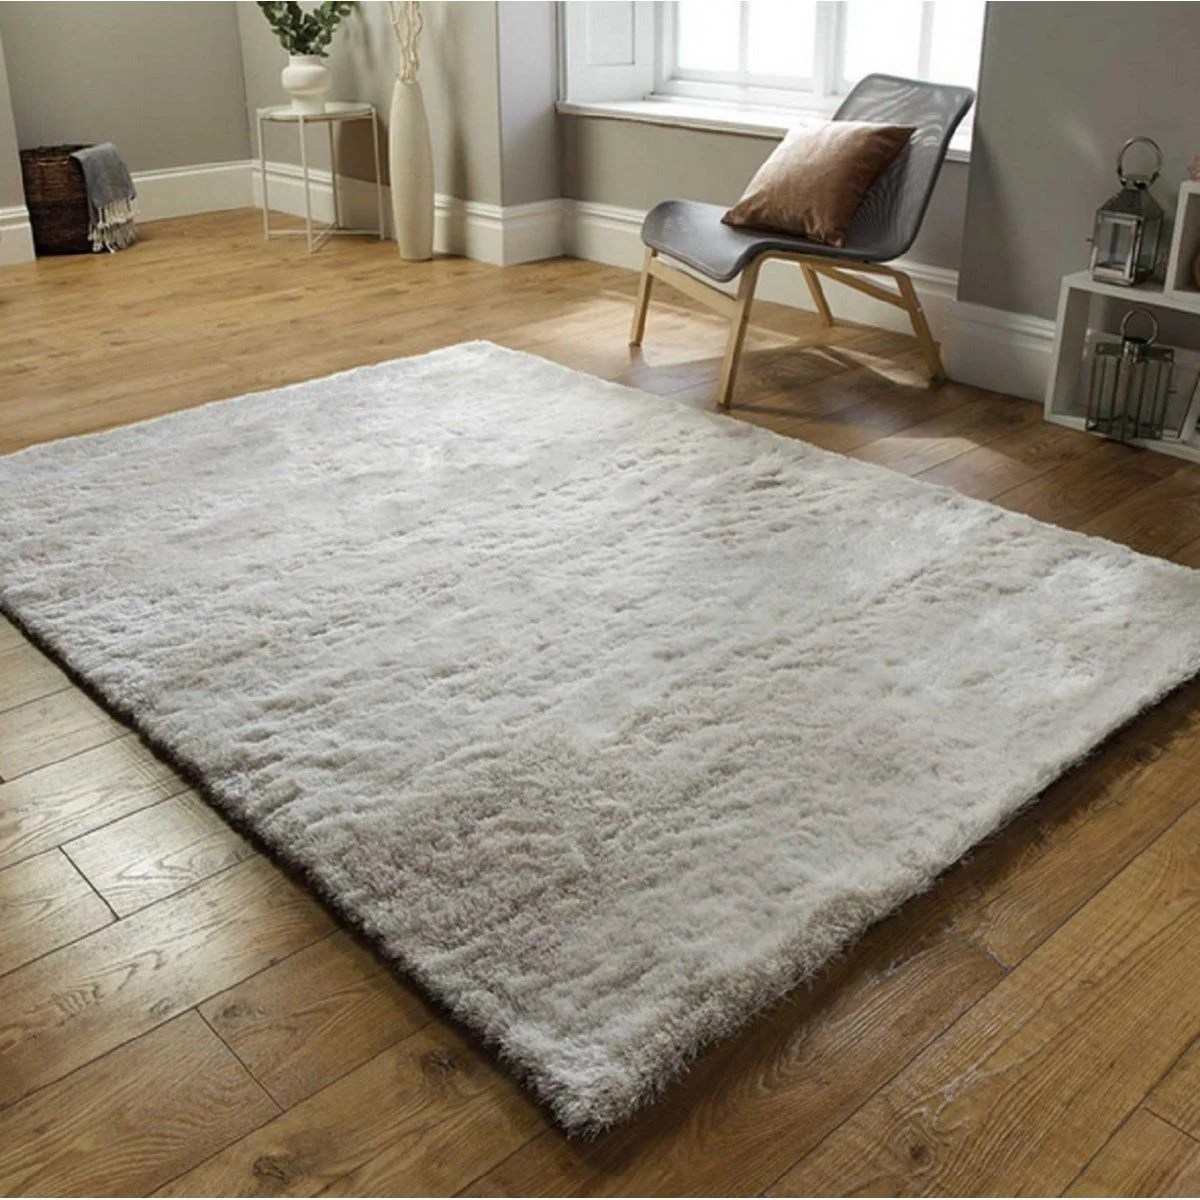 https www laredoute fr lndng ctlg aspx artcl tapis poil blanc